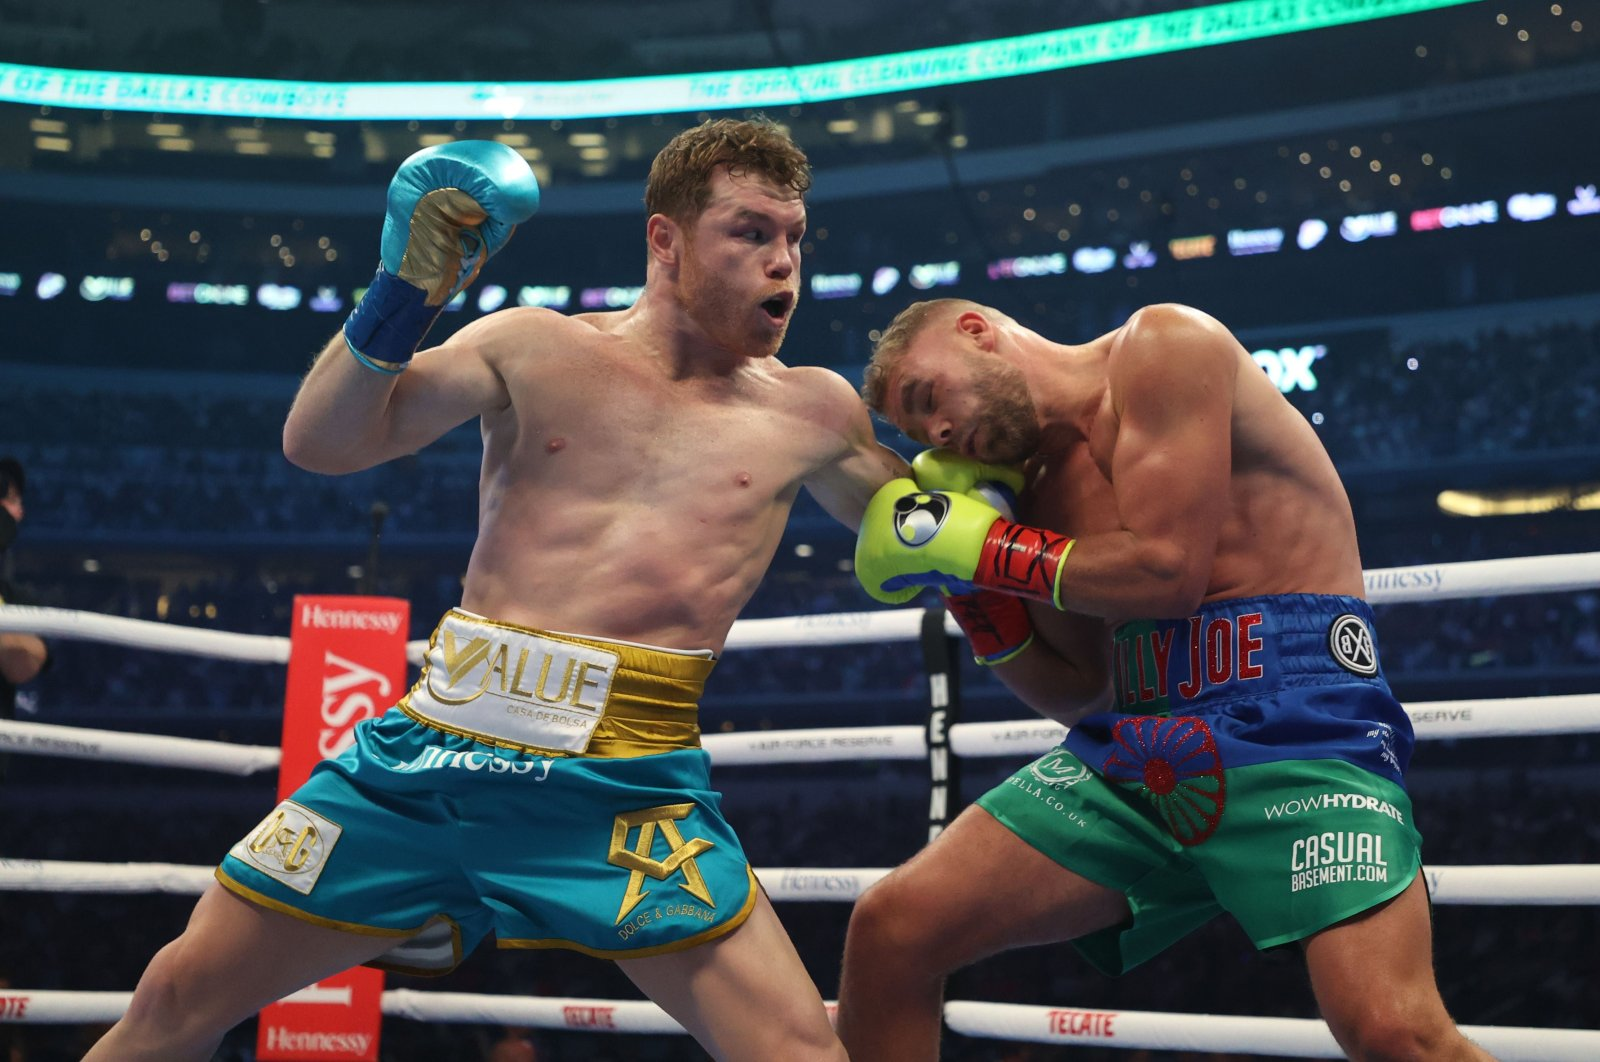 Canelo Alvarez punches Billy Joe Saunders during their fight for Alvarez's WBC and WBA super middleweight titles and Saunders' WBO super middleweight title at the AT&T Stadium, Arlington, Texas, May 08, 2021.